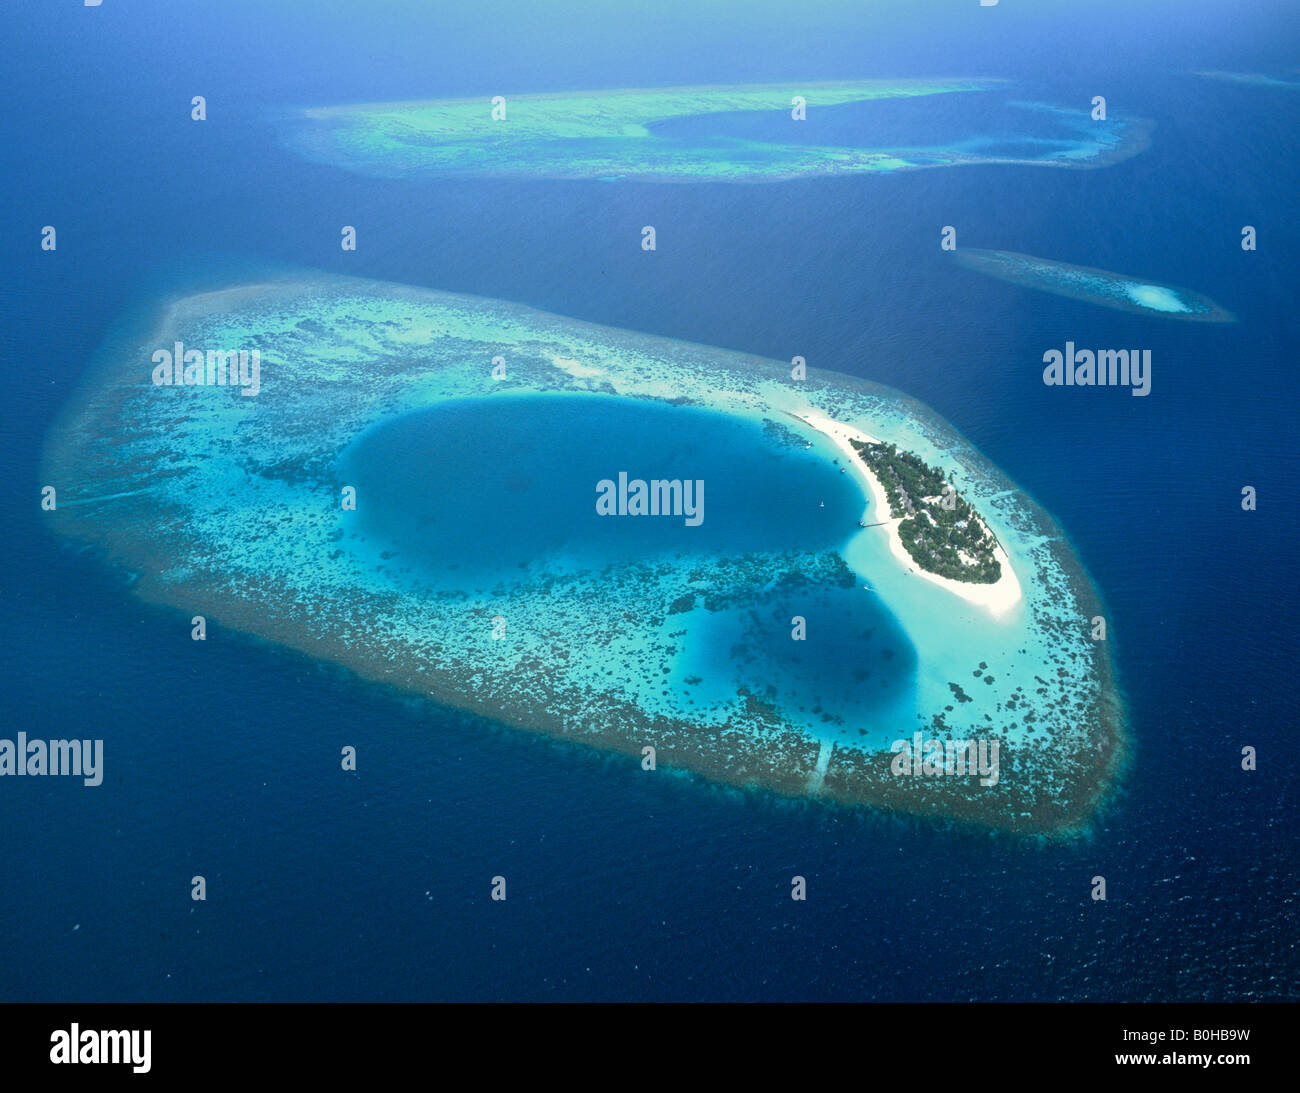 Island of Bathala, aerial view, Ari Atoll, Maldives, Indian Ocean - Stock Image